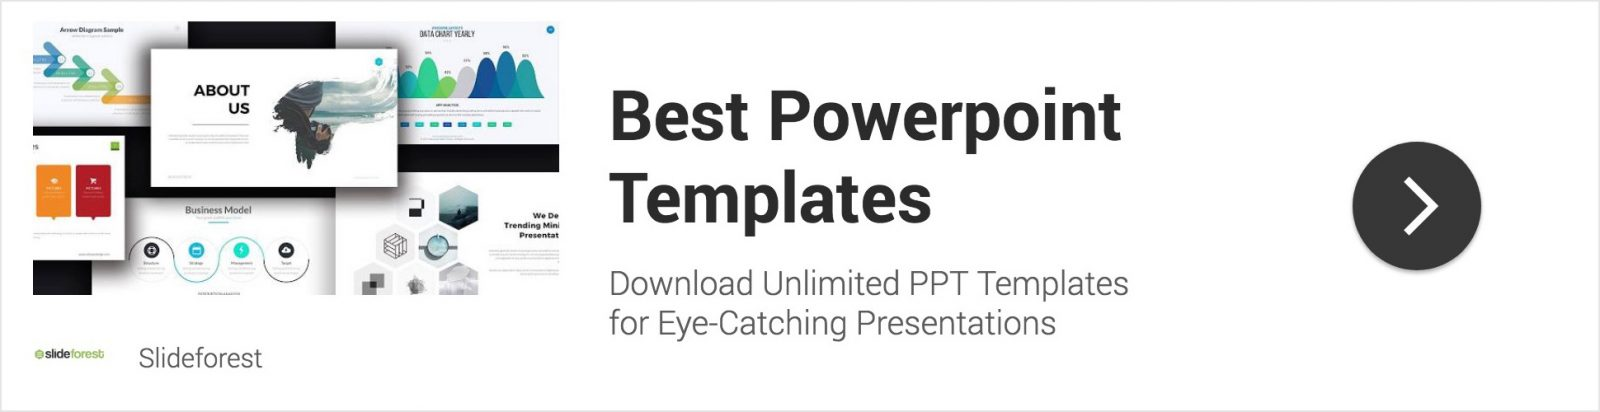 95 free powerpoint templates best ppt presentation themes free powerpoint templates toneelgroepblik Images